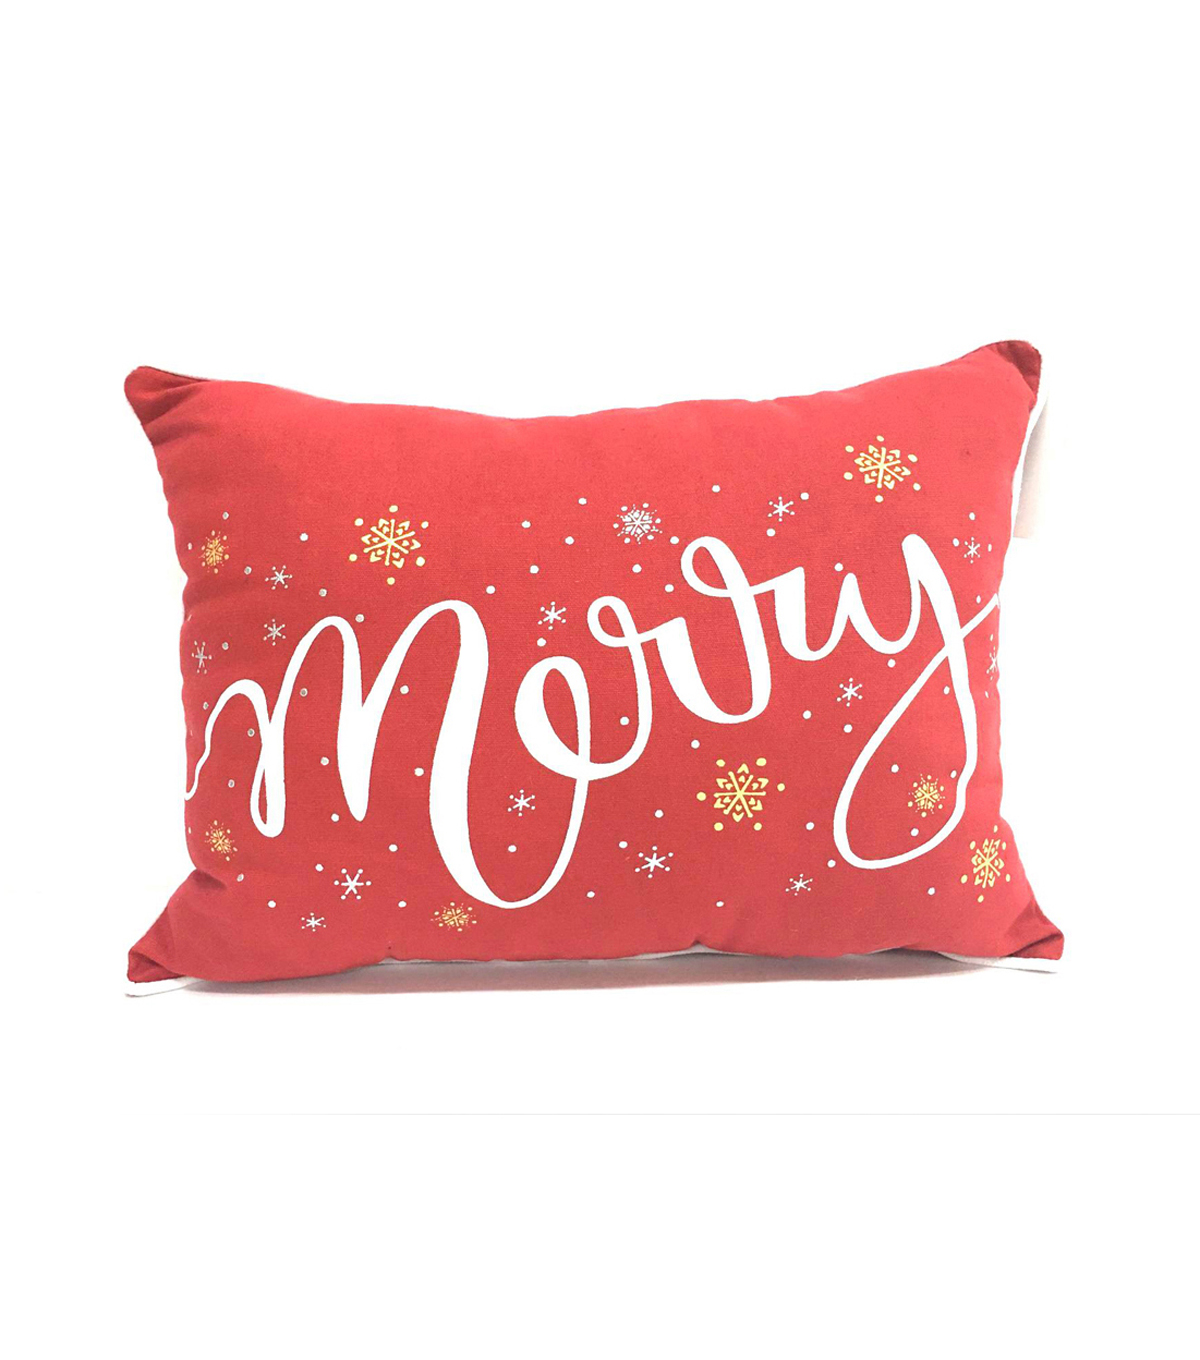 Maker's Holiday Pillow-Merry